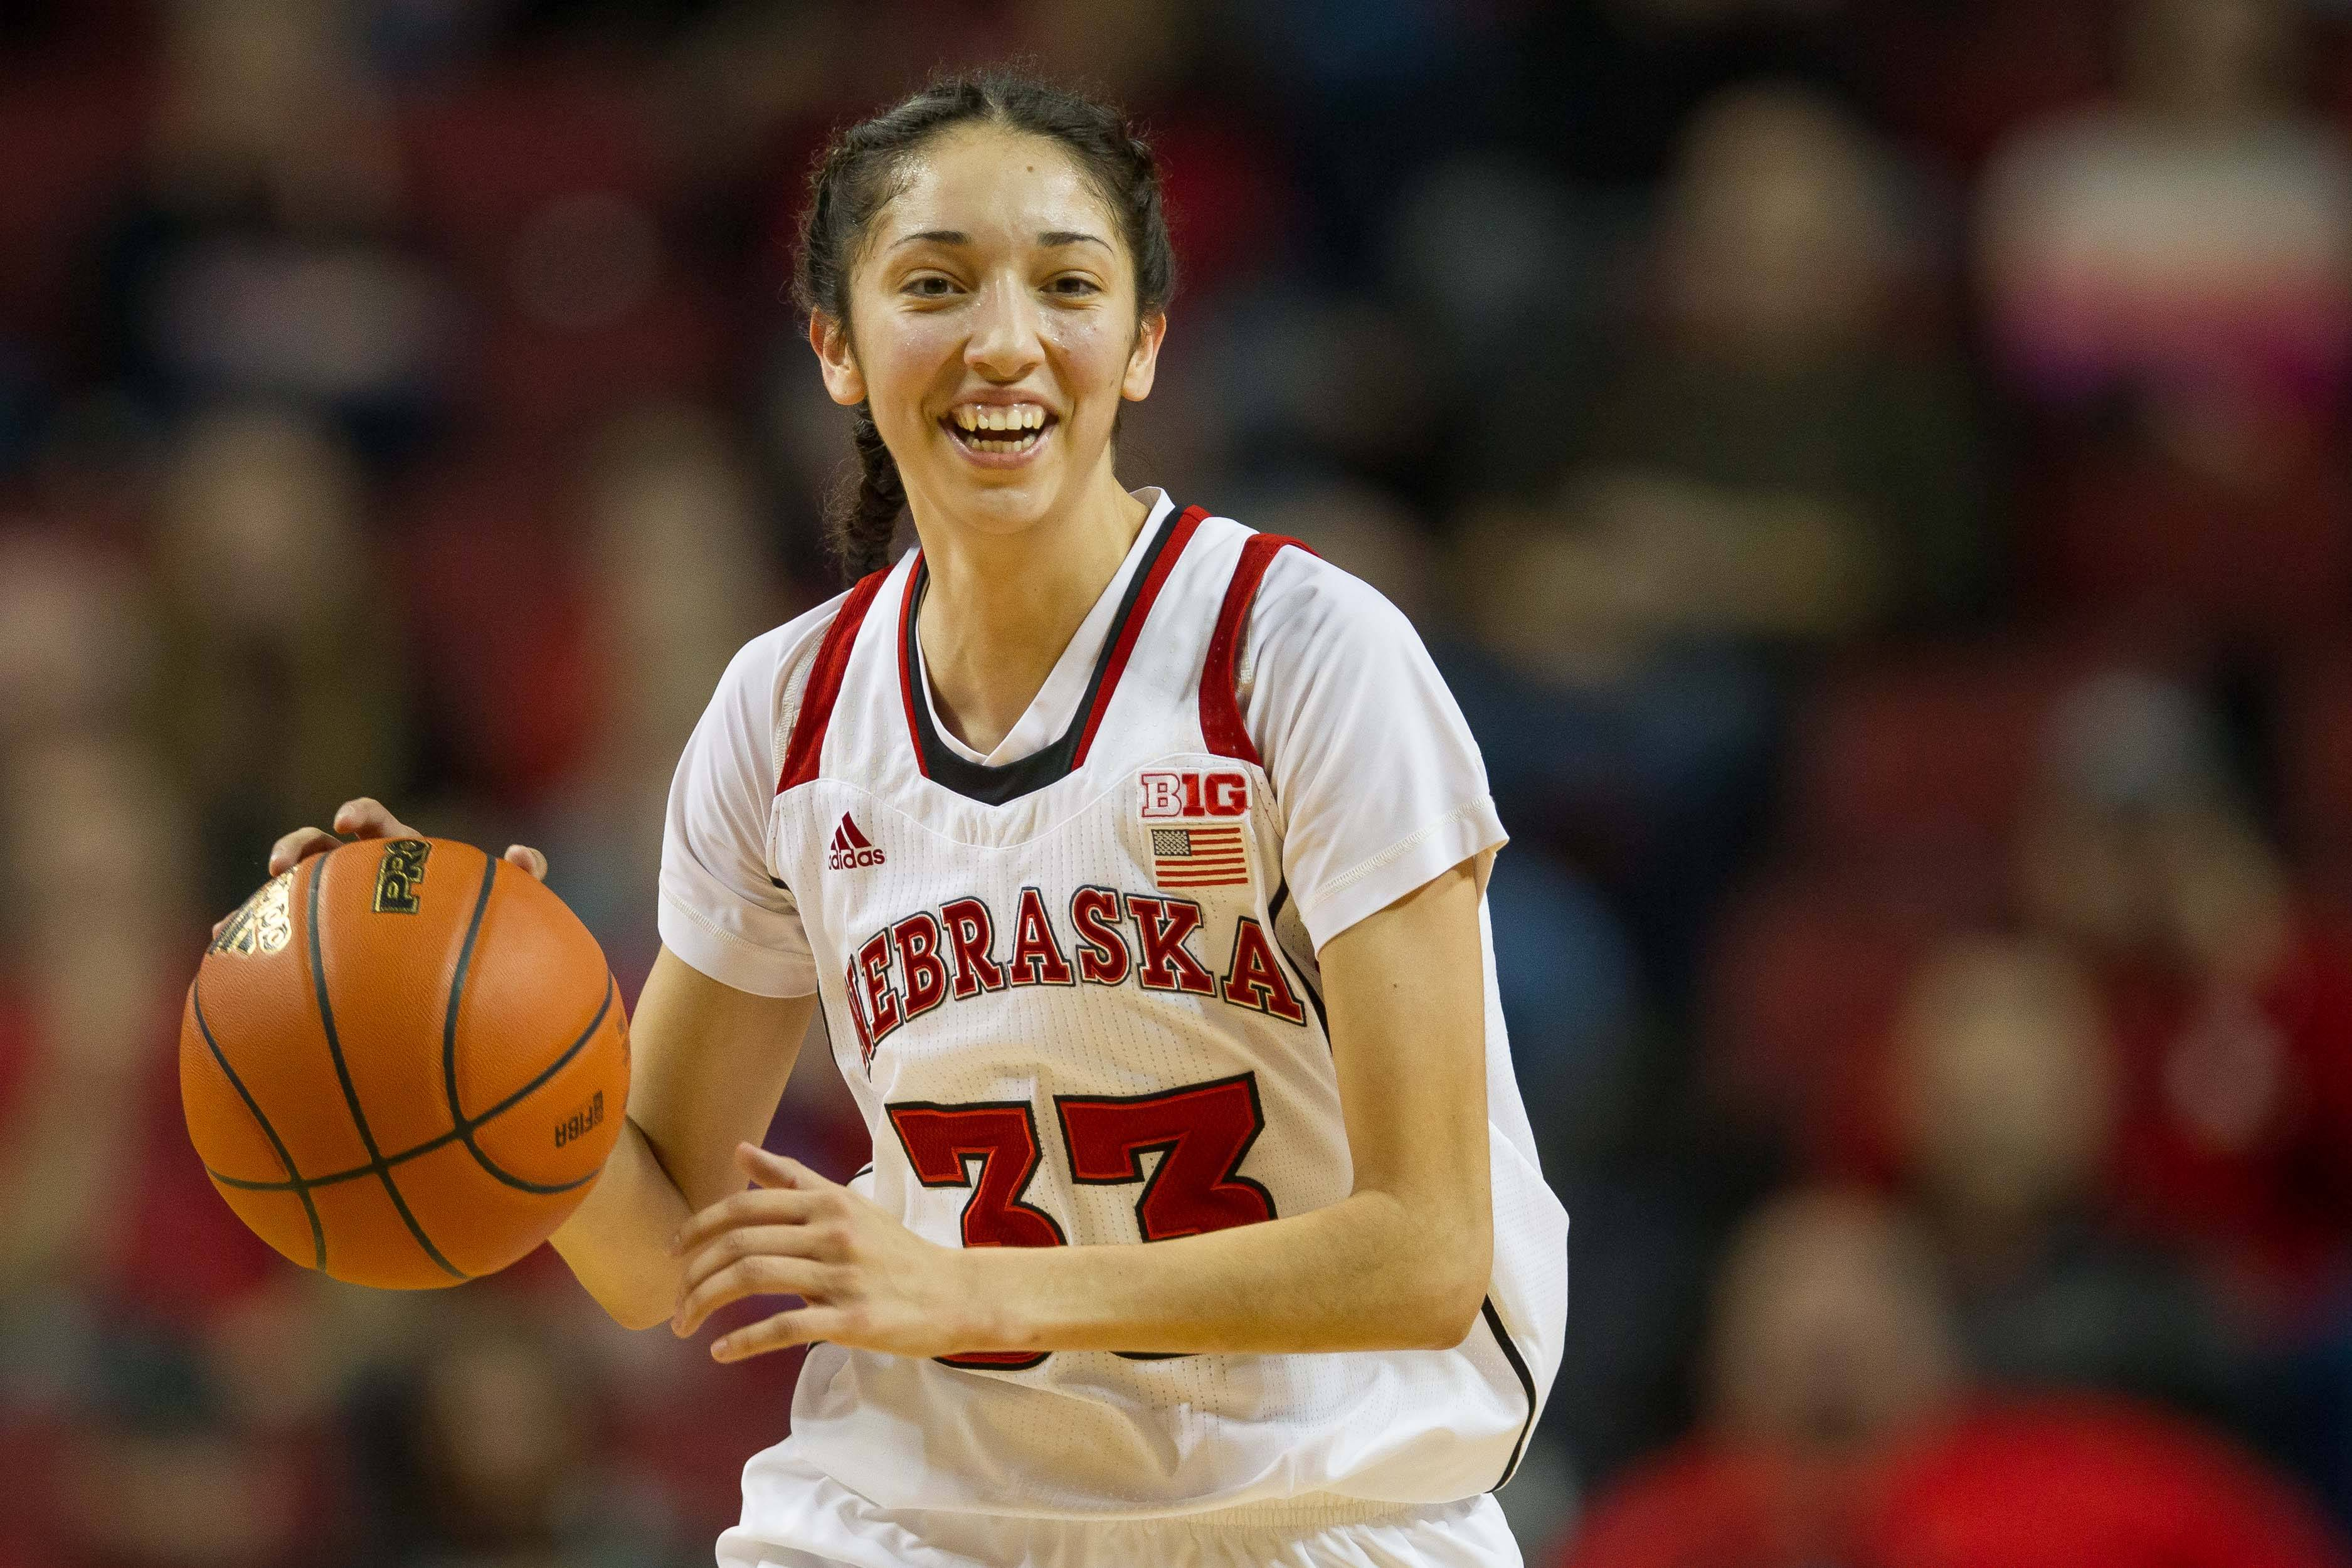 Big Red Review: Huskers Earn Fourth Straight NCAA Bid